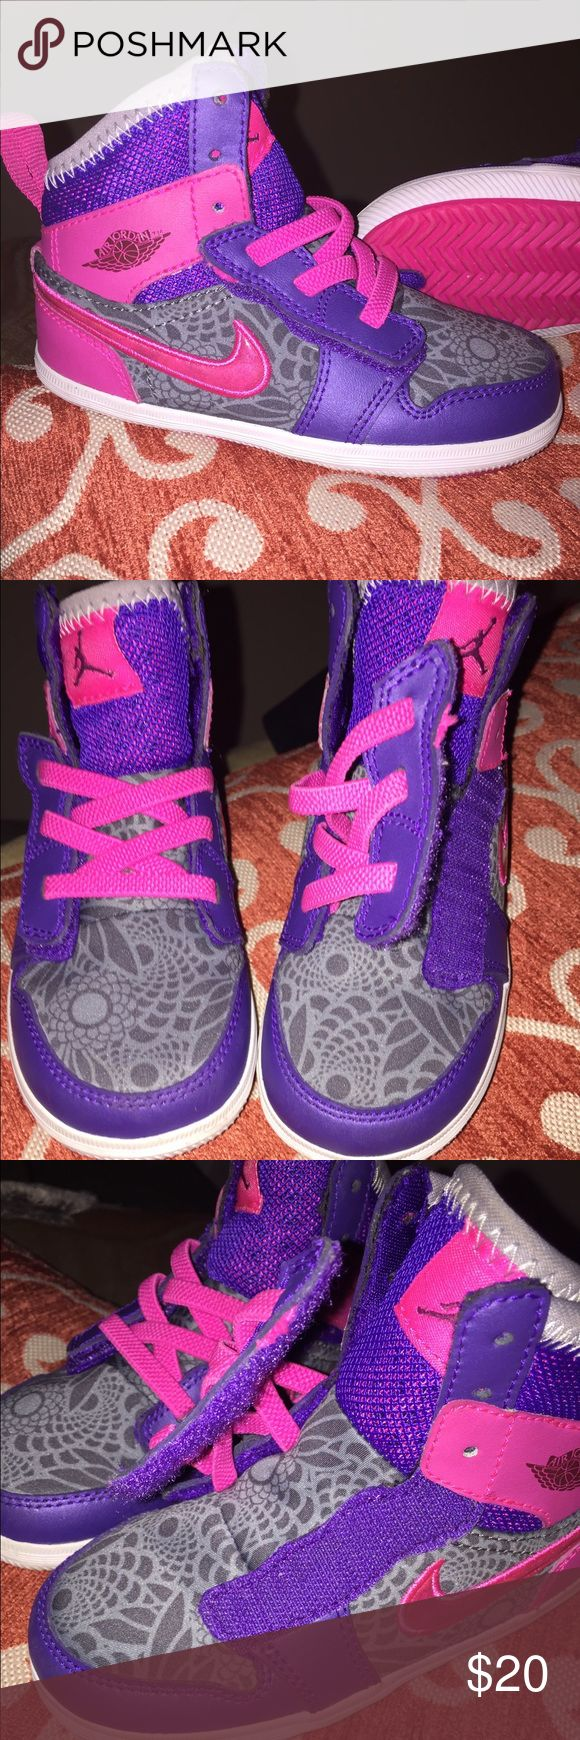 brand new, never worn super cute Jordan's brand new, no box Jordan's with elastic velcro shoe laces perfect for toddlers // no trades Jordan Shoes Sneakers